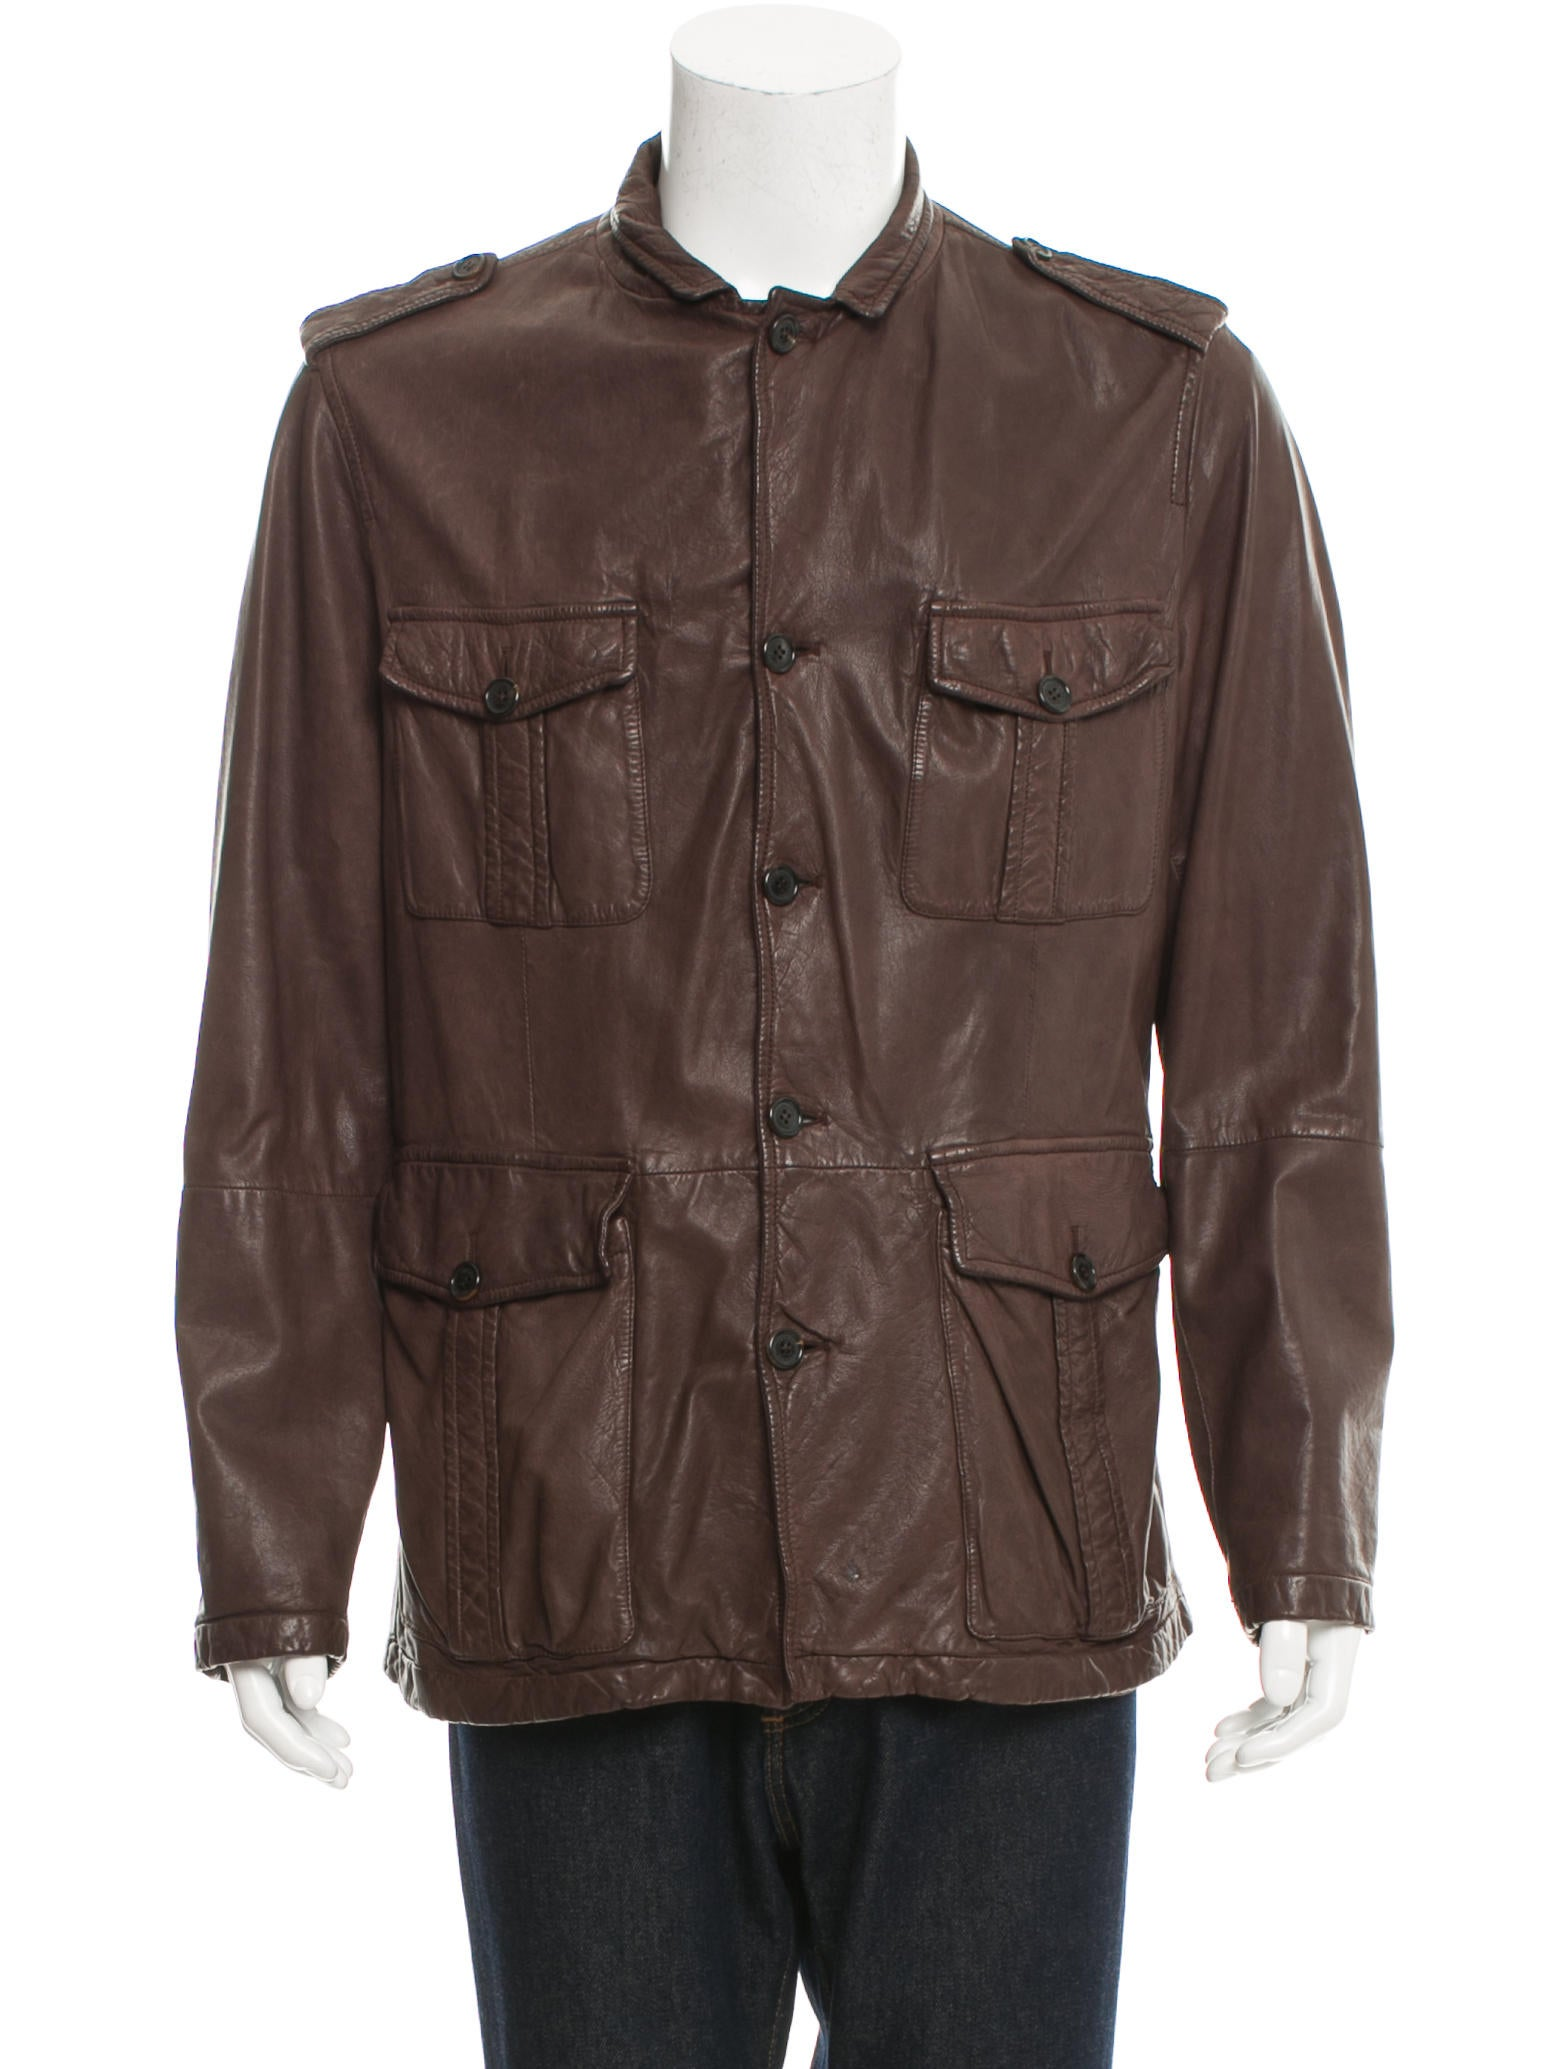 Find great deals on eBay for brown utility jacket. Shop with confidence.